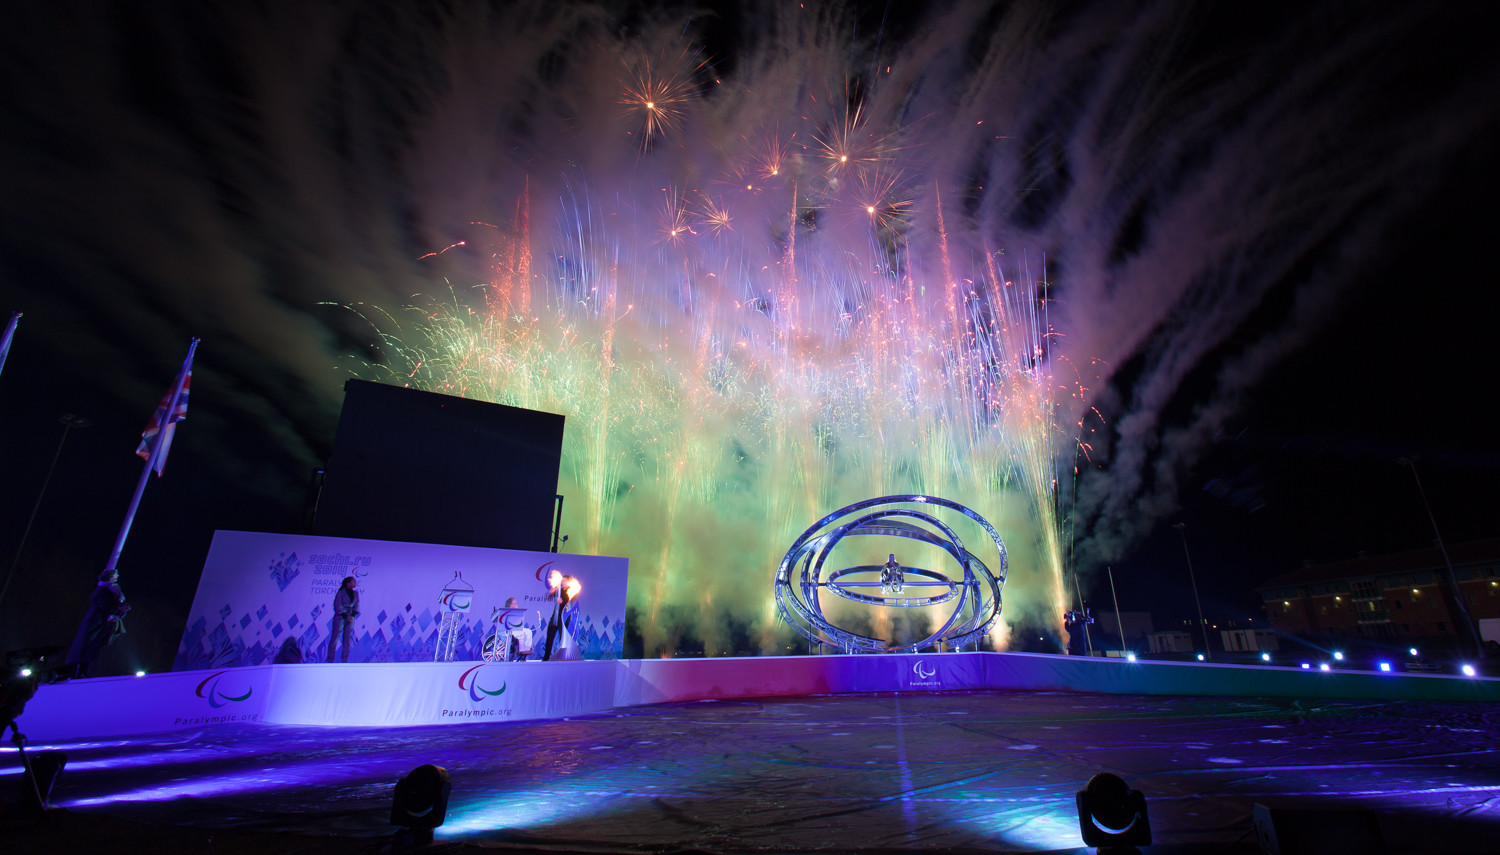 Schoolchildren invited to design cauldron for Tokyo 2020 Paralympic lighting ceremony